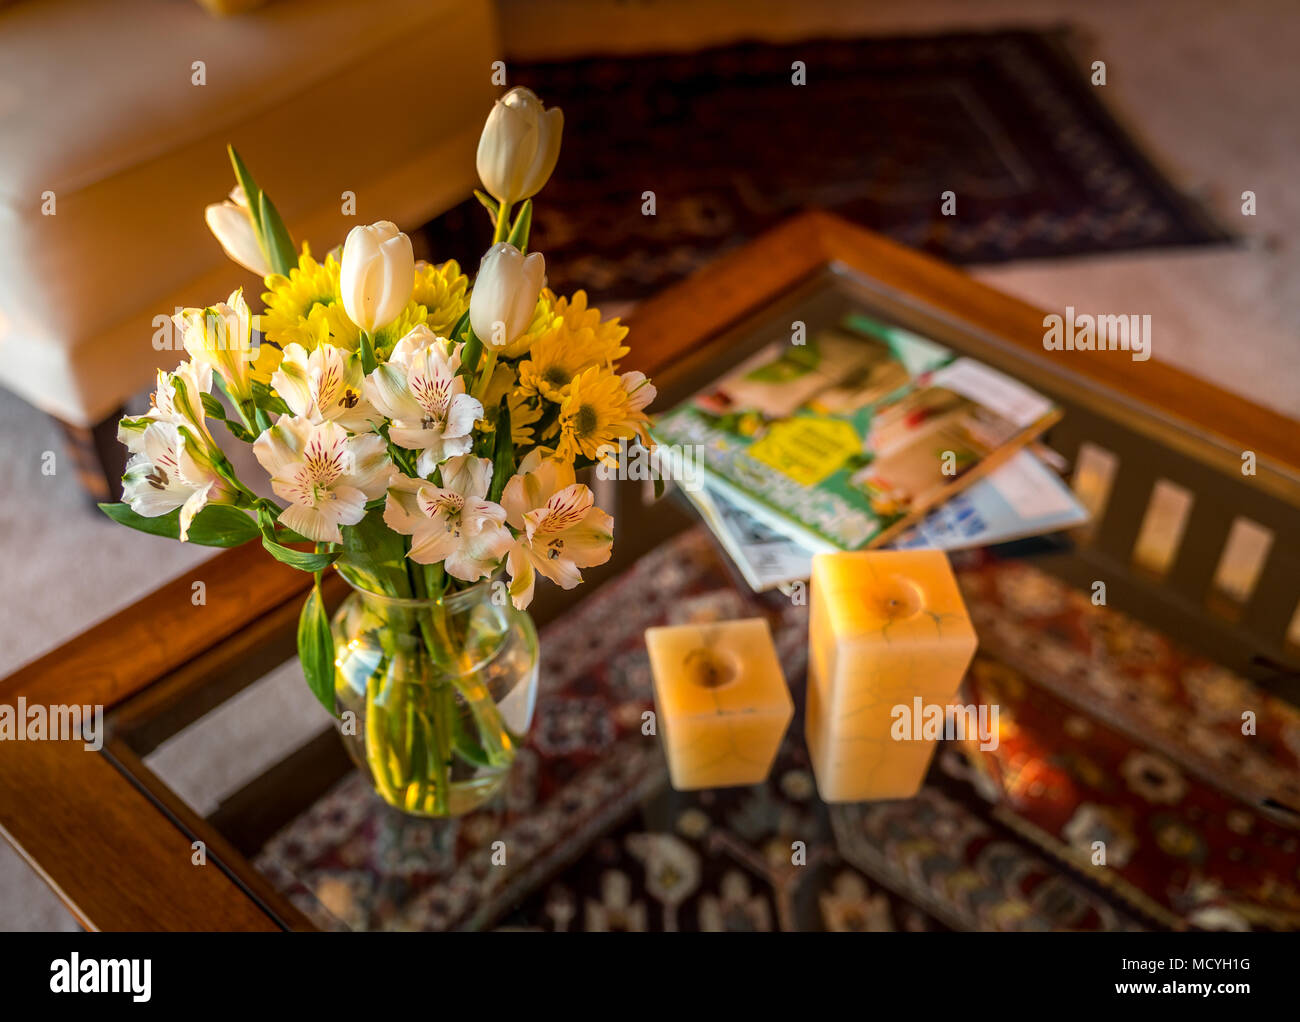 Home Interior Decor In A Warm Color Setting Flash Cut Flowers In A